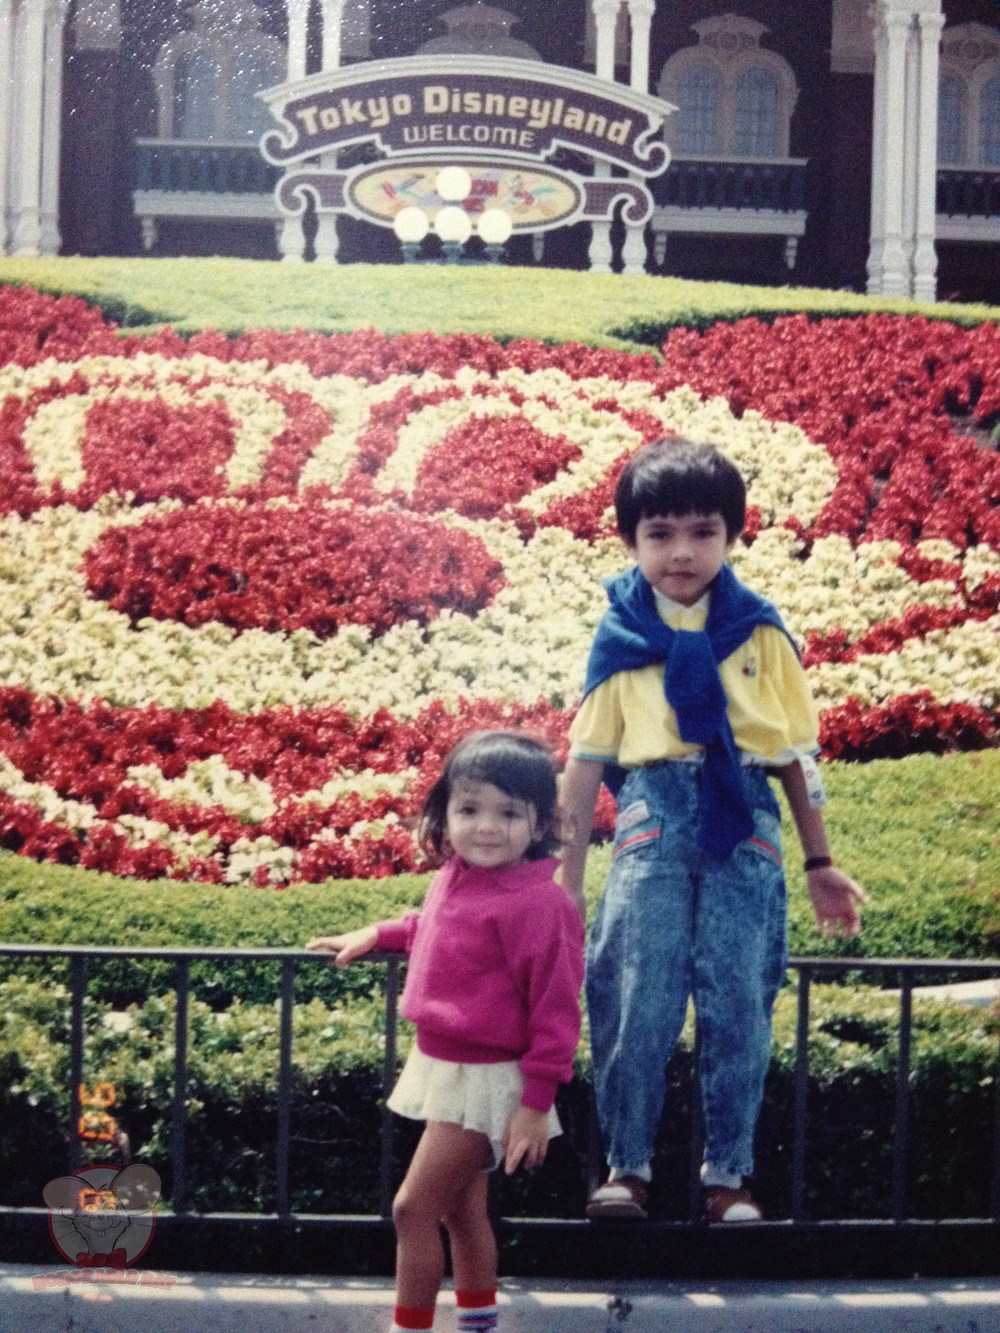 My sister, Natasha, and I at Tokyo Disneyland when we were kids